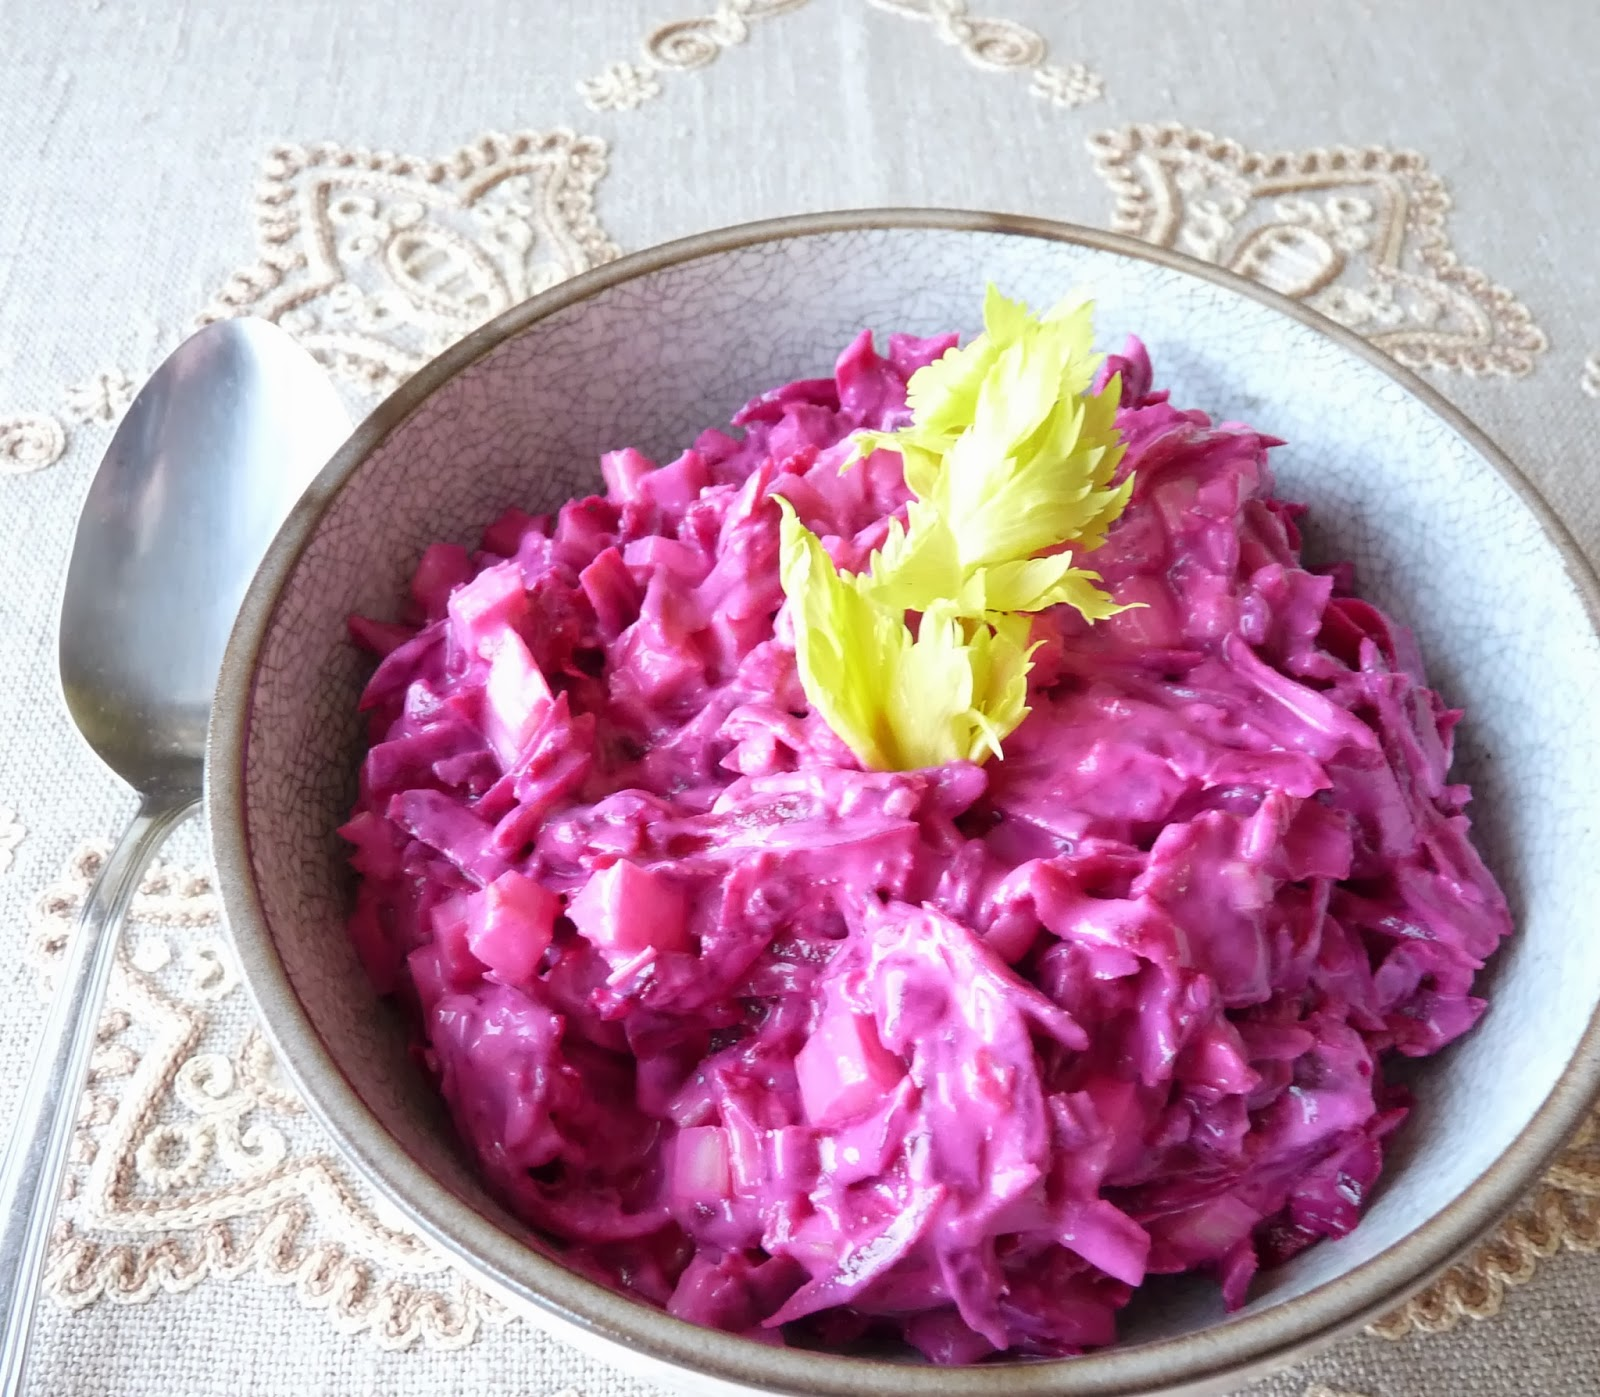 Beets with Yogurt & Garlic